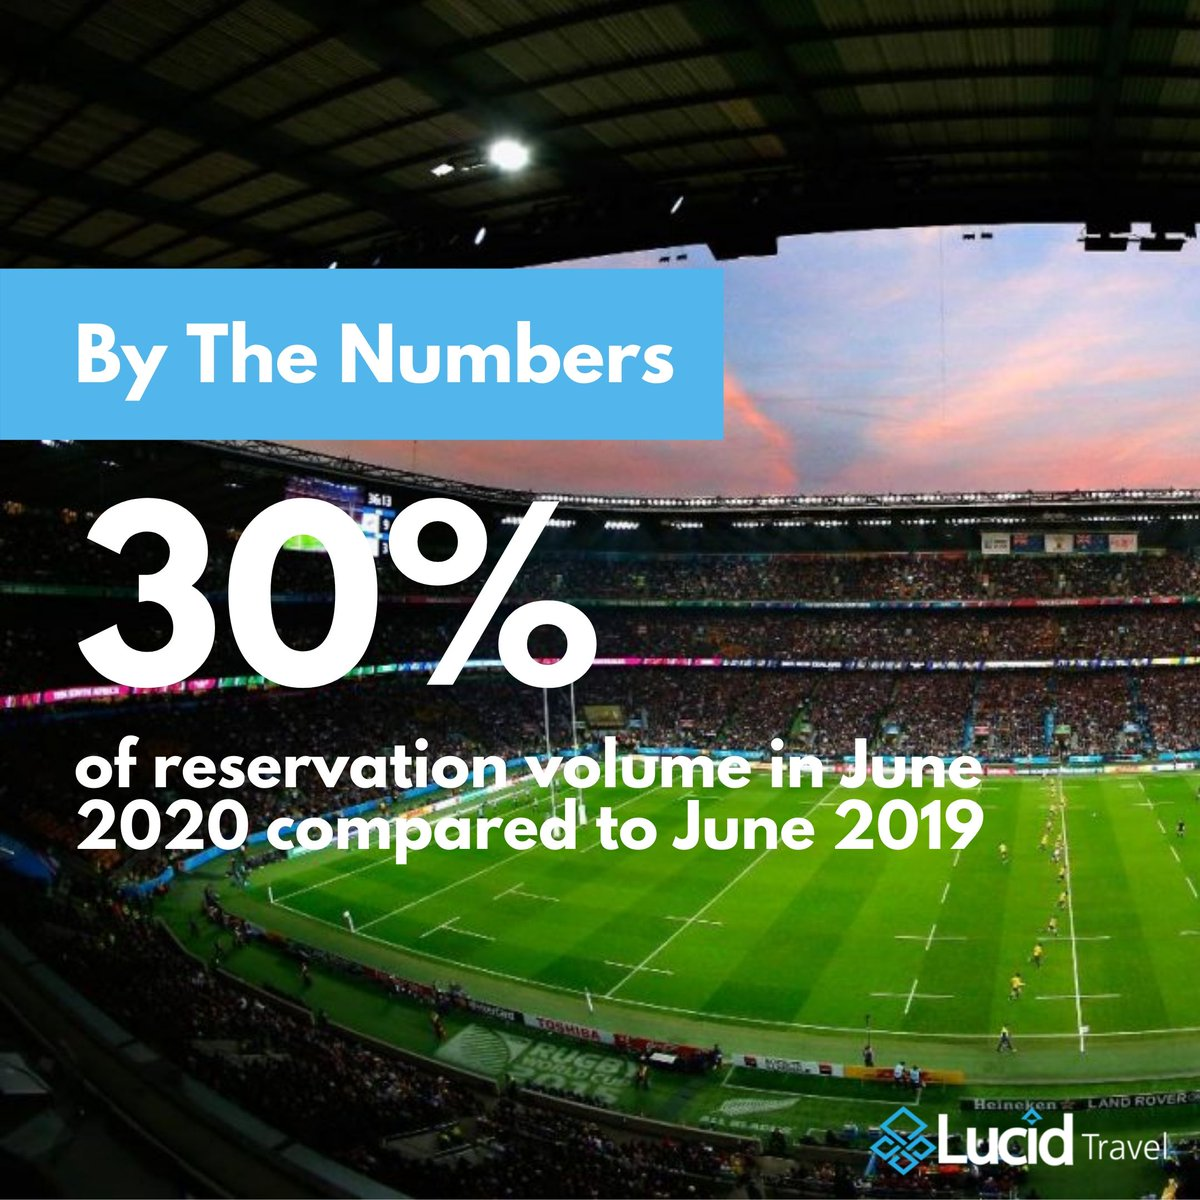 """Some good news on trends we're seeing in sports & event travel.  In June 2020, we had ~30% of the reservation volume booked in 2019.  This does not mean there will be a fast recovery to """"normal"""" but it does mean that things are trending in the right direction.  #sports #travel"""